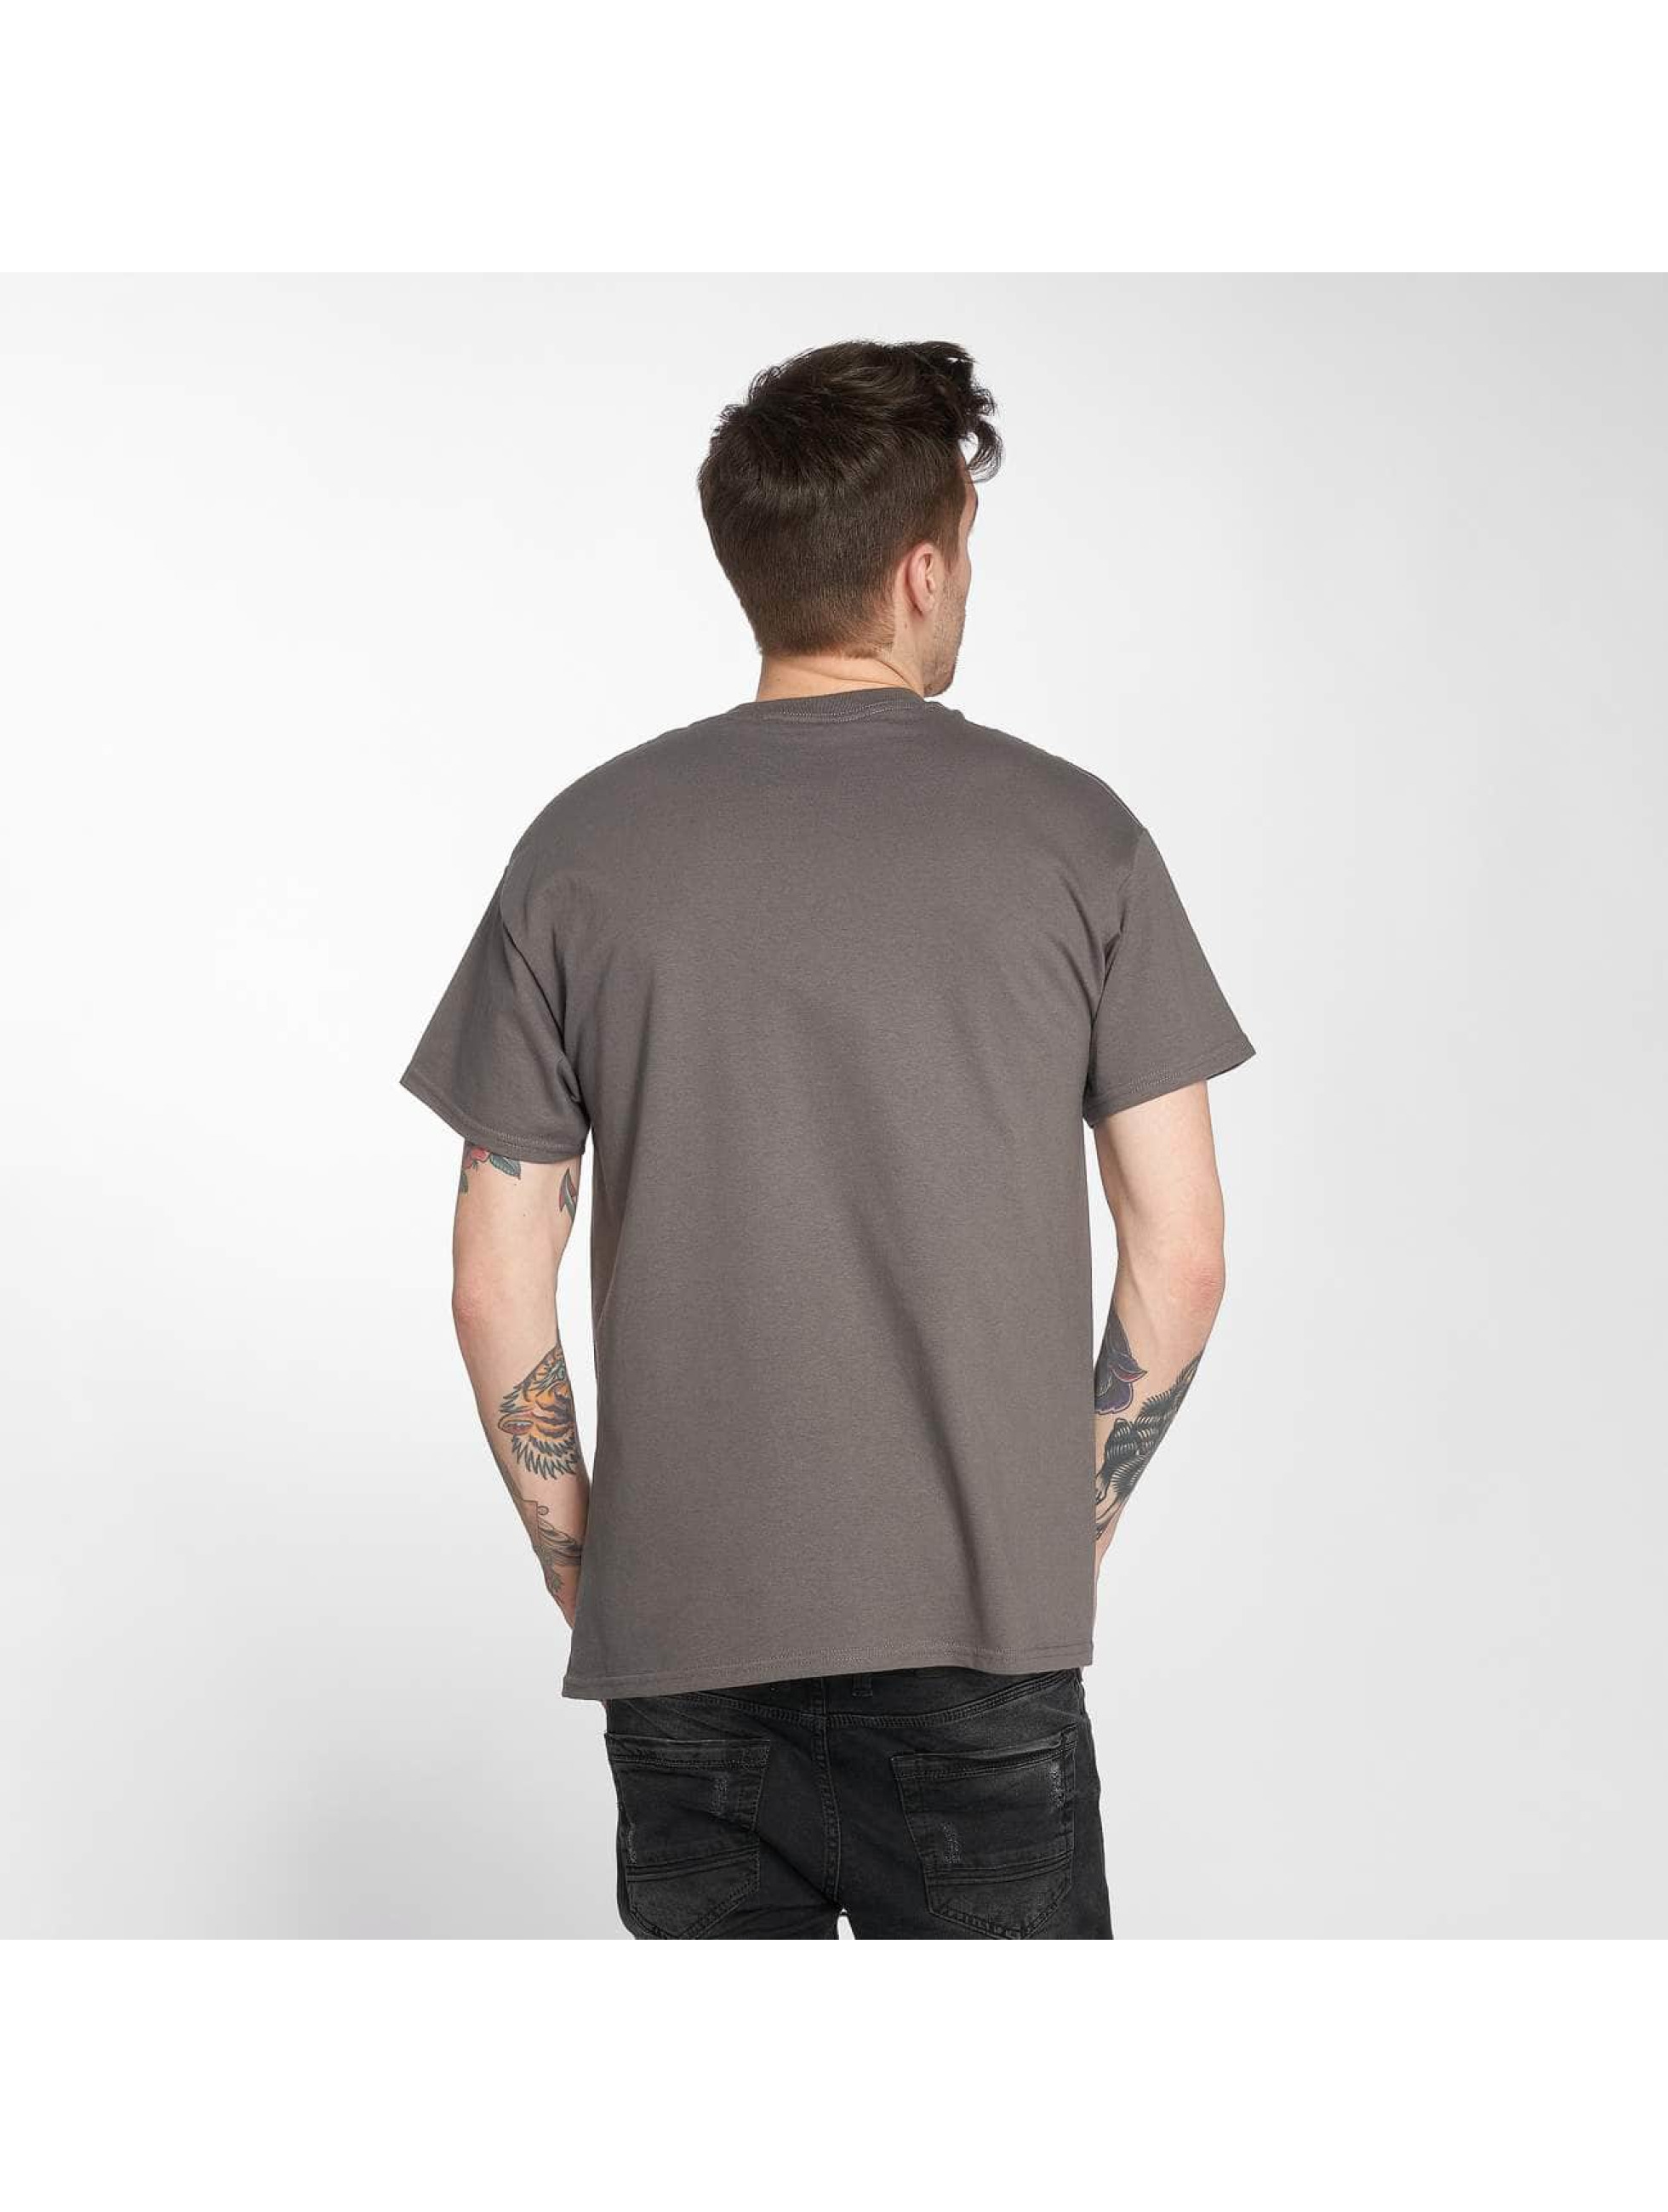 Joker T-Shirt Drama gray